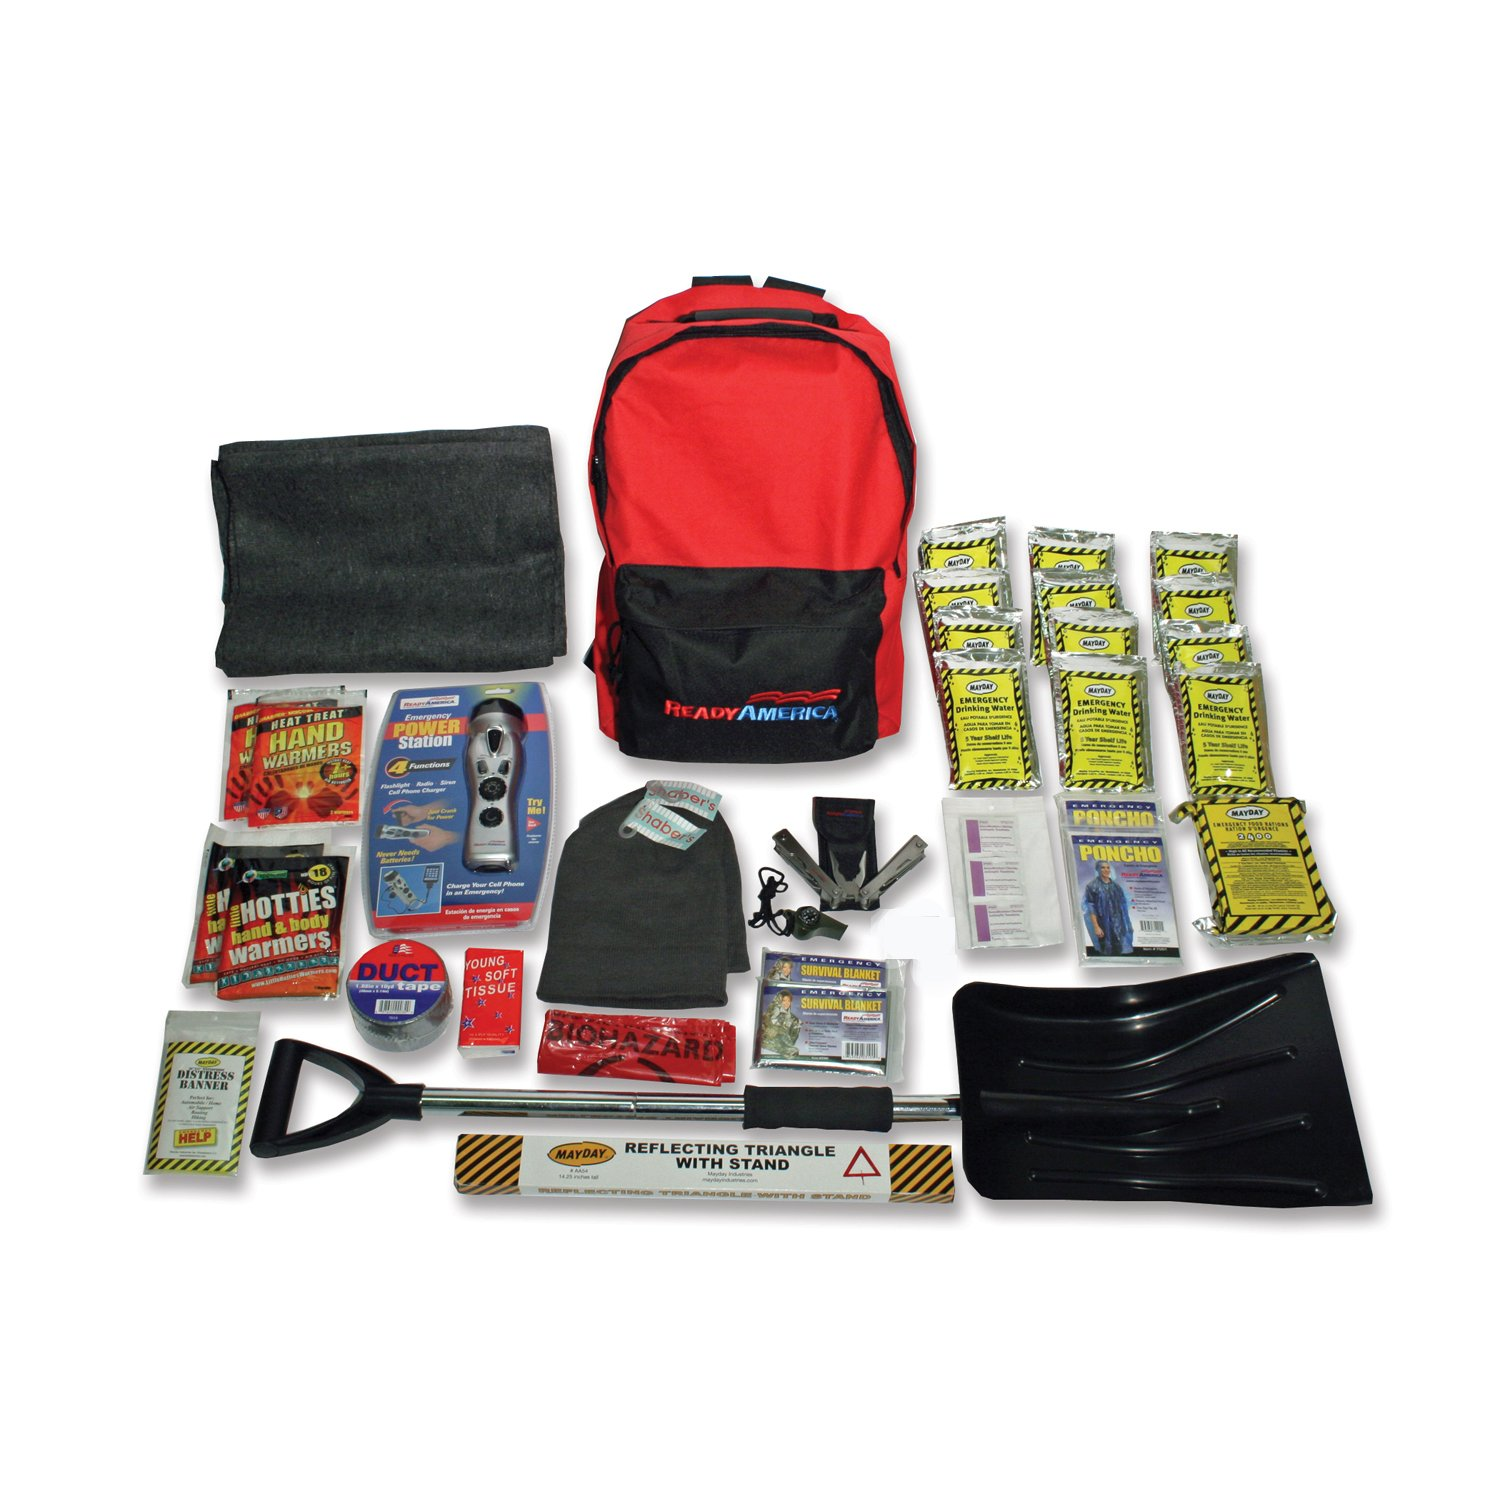 Ready America 70410 Cold Weather Survival Kit for Two Person by Ready America